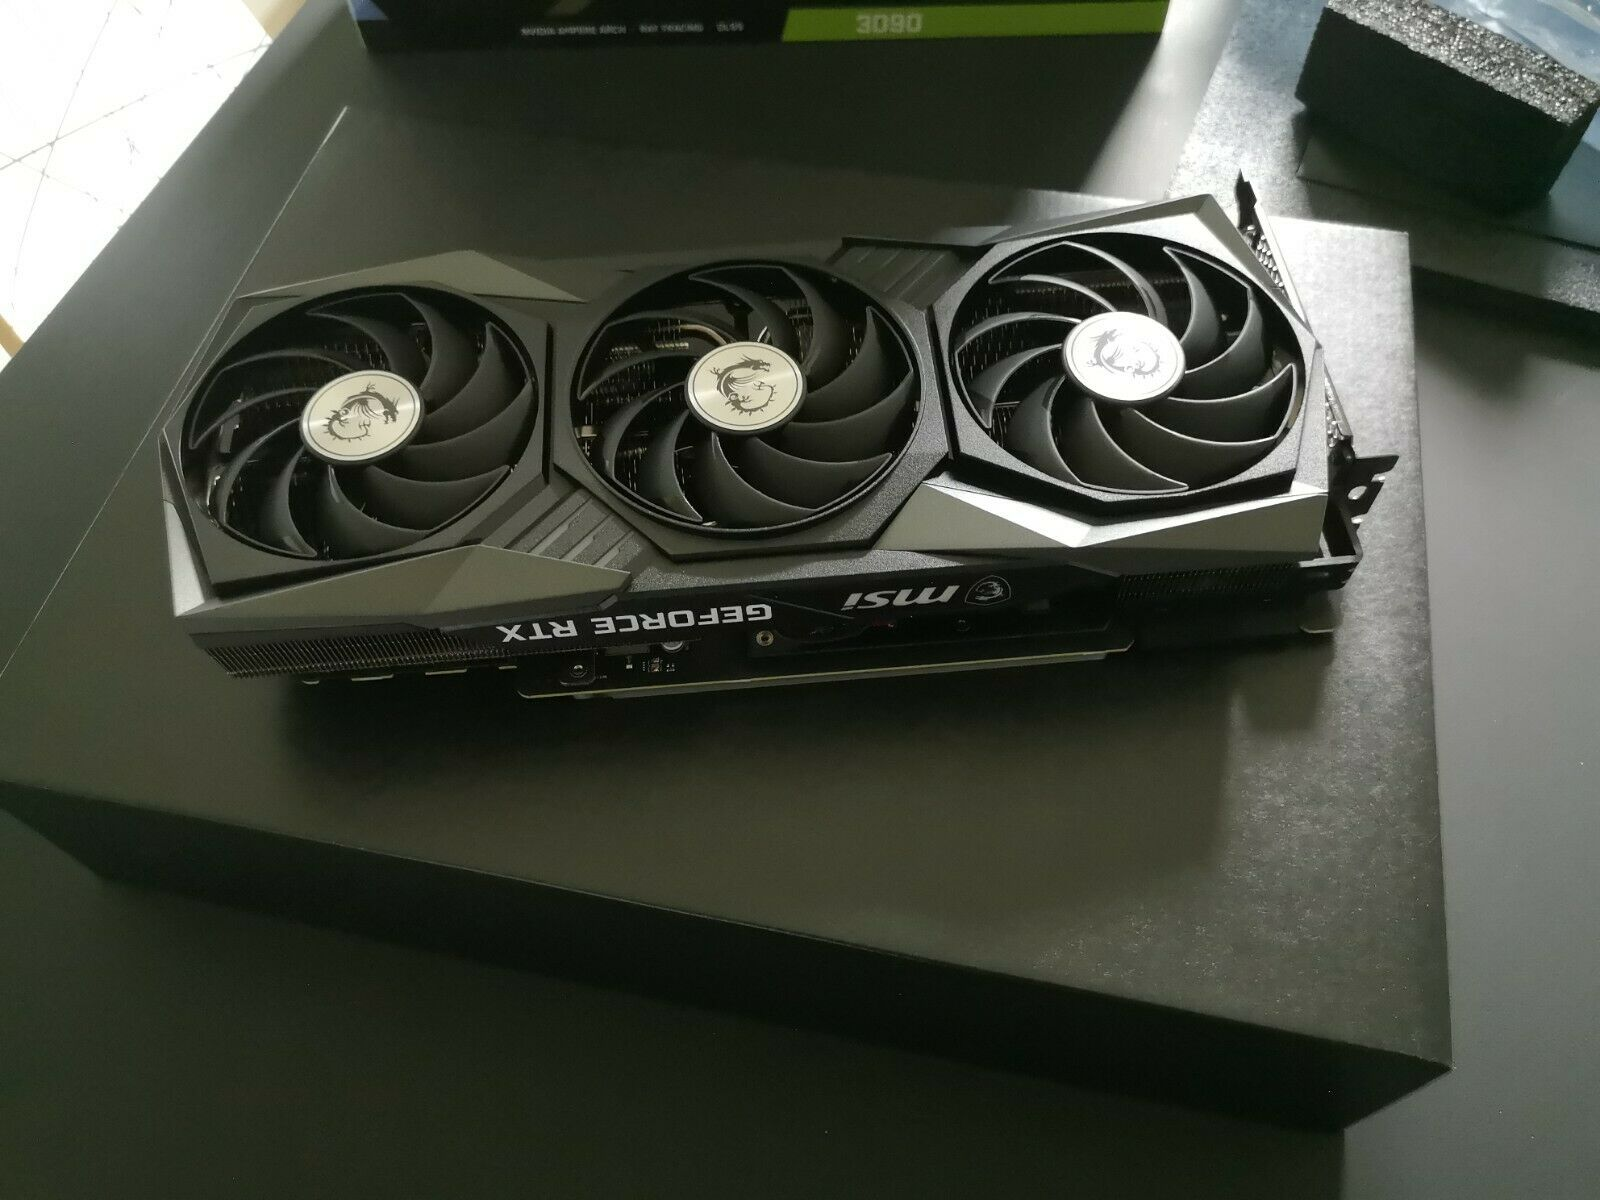 BITMAIN ANTMINERSGEFORCE GRAPHIC CARDS FOR SALE